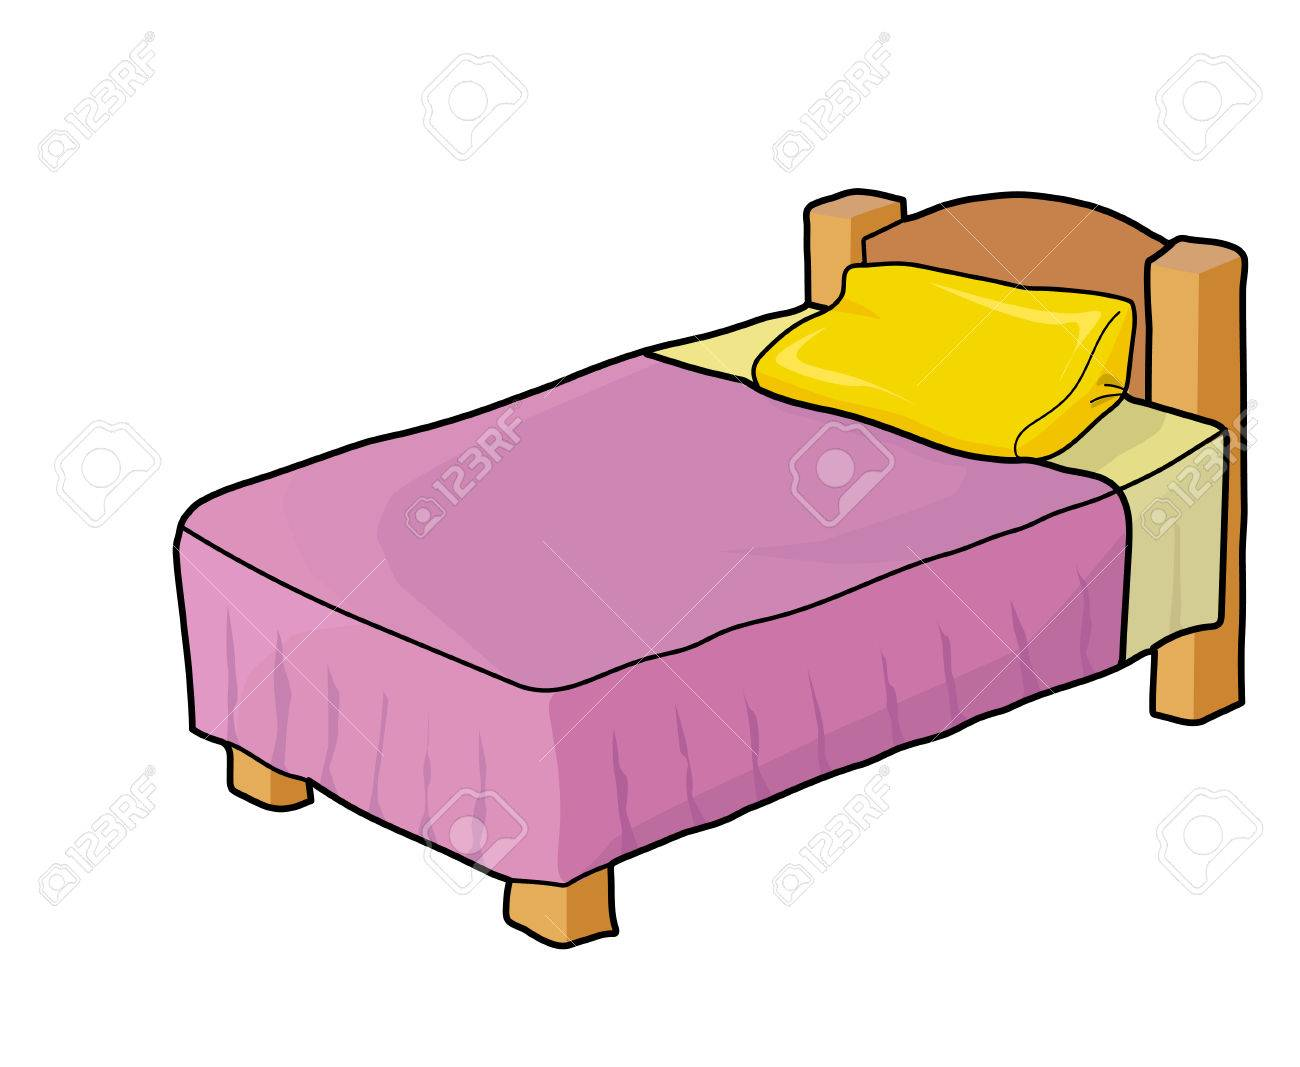 Wooden bed. Purple blanket. Yellow pillow..